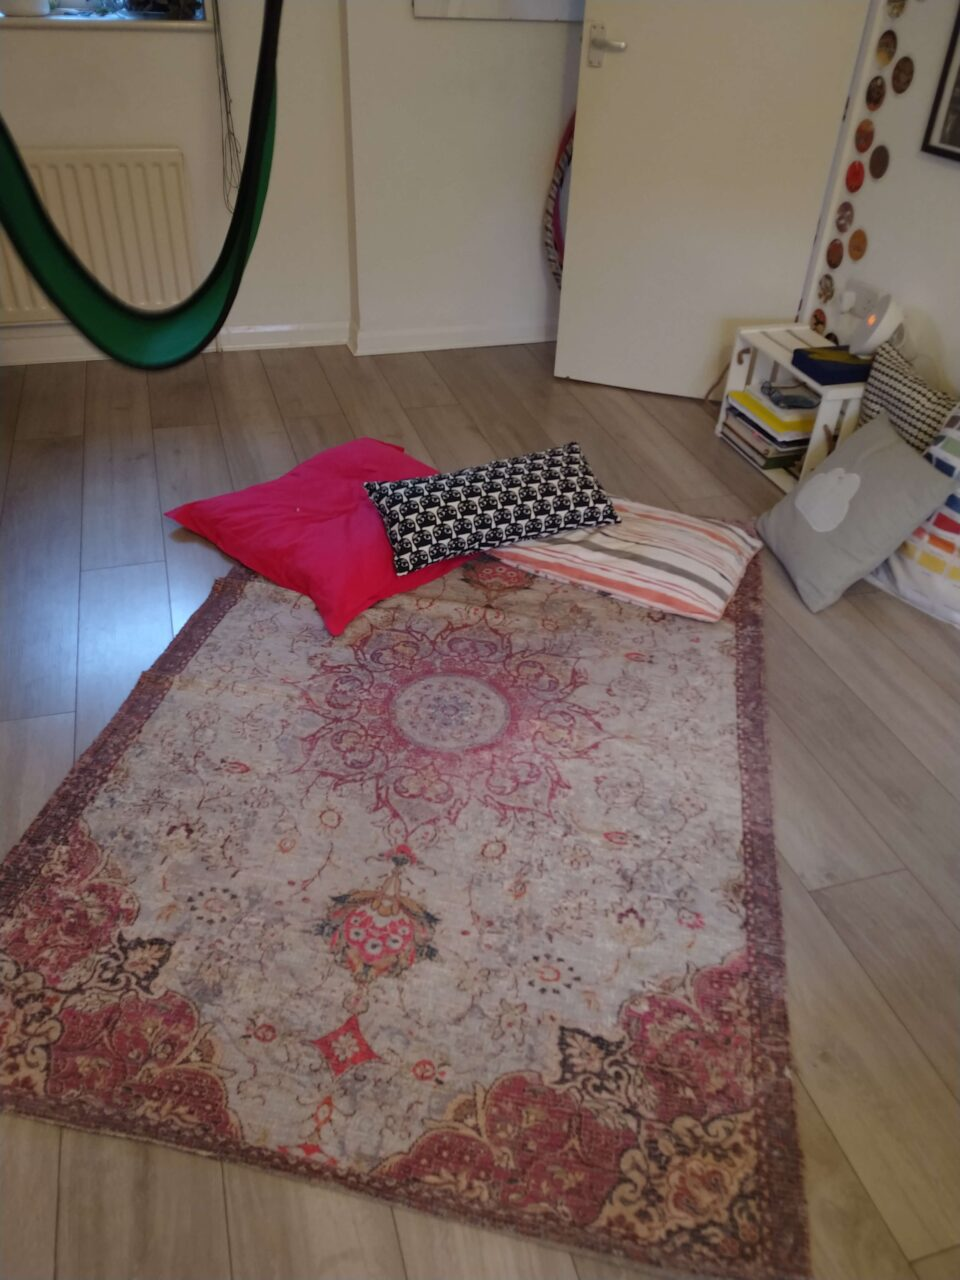 A rug is located diagonally with a small pile of cushions at one end.